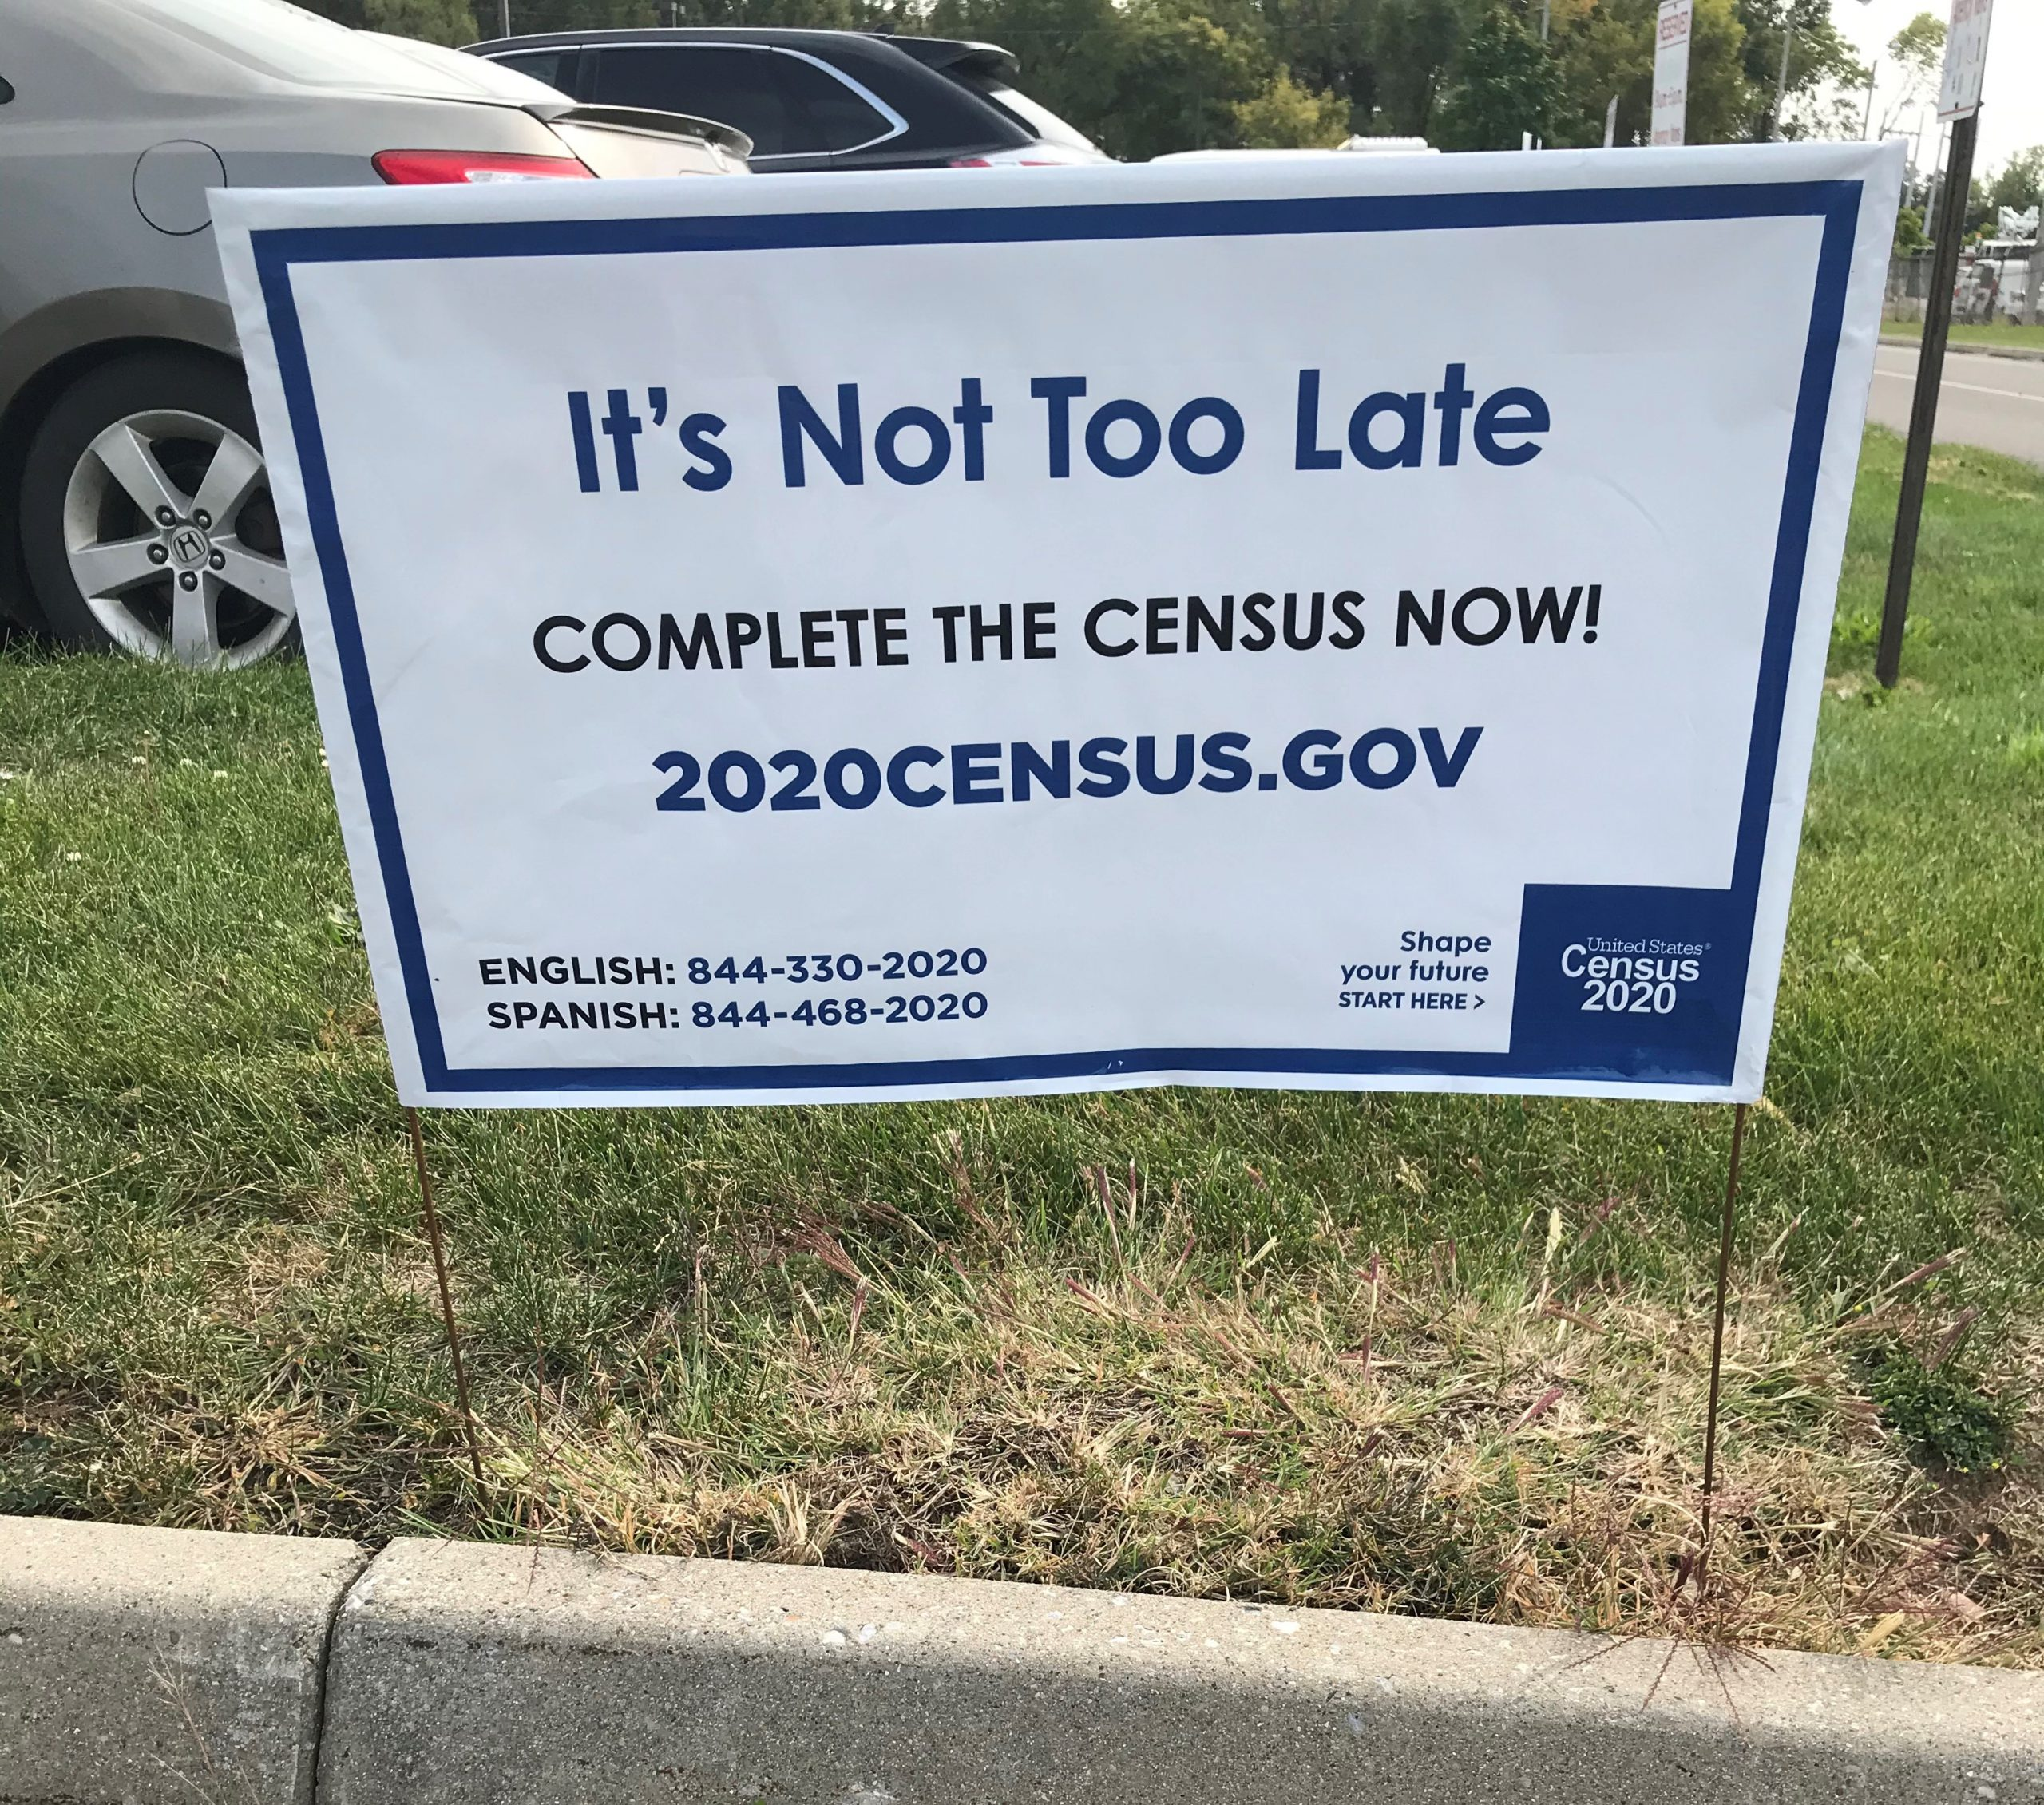 Census sign encouraging people to complete the 2020 census.